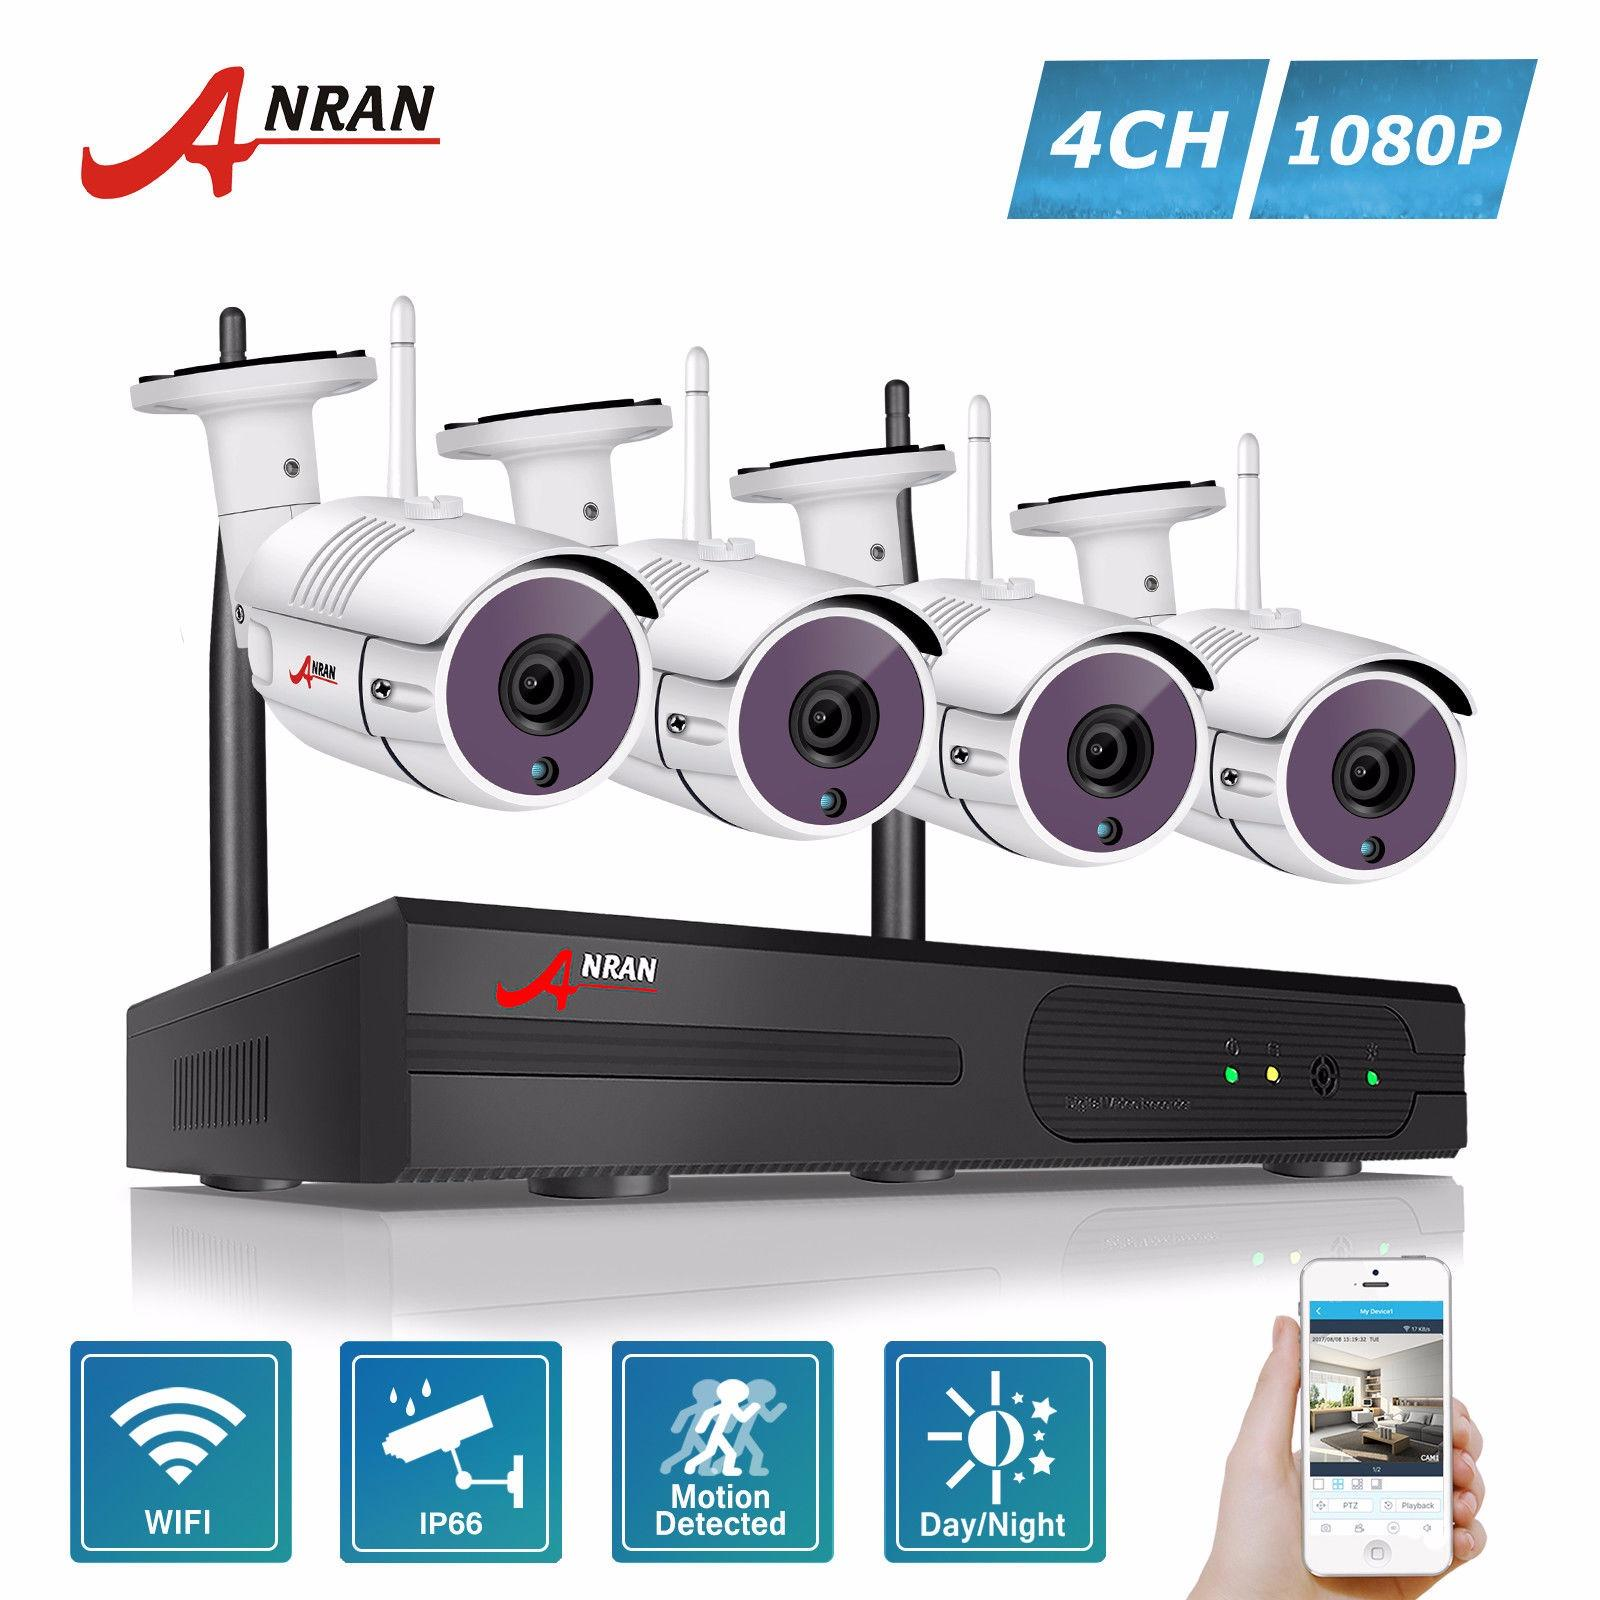 Anran 4Ch Wireless Nvr Security Cctv System P2P 1080P Hd Outdoor Vandalproof Wfi Ip Camera Tiongkok